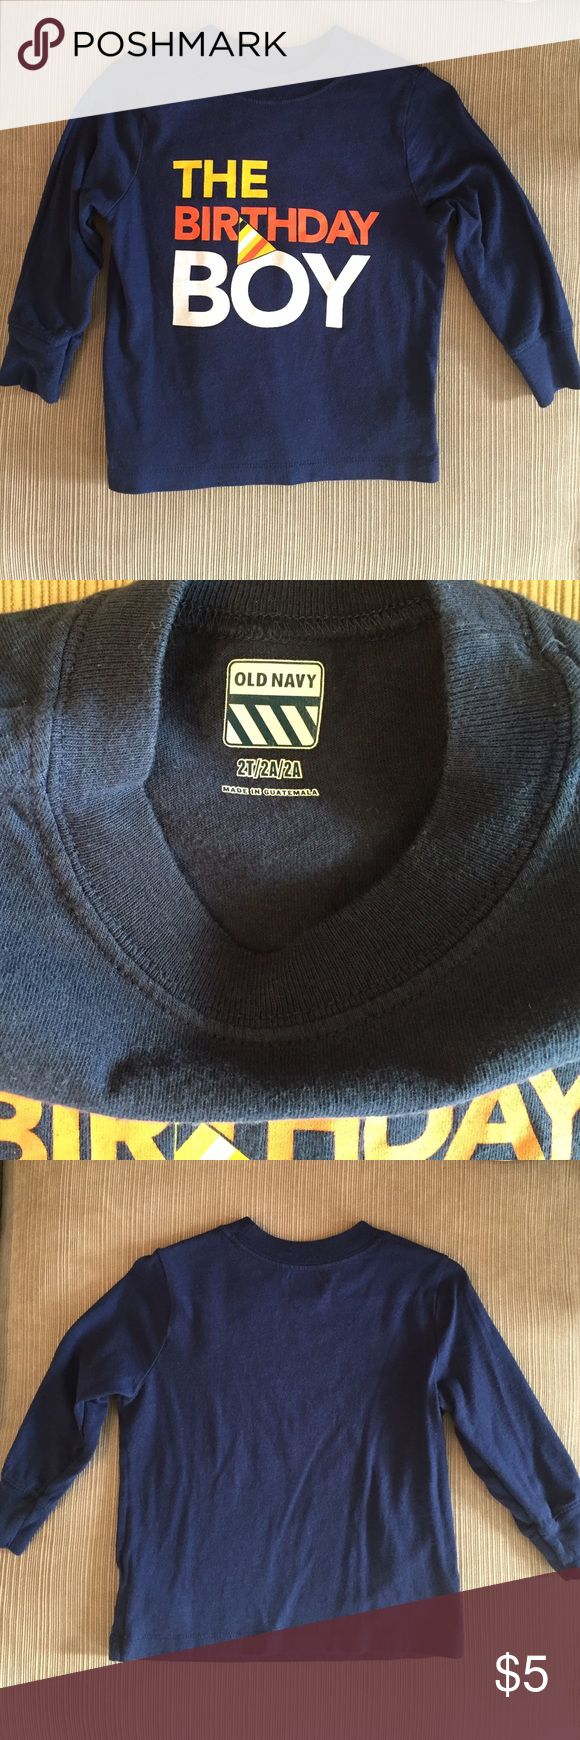 """Old Navy birthday boy tshirt - Size 2T Old Navy """"The birthday boy"""" tshirt - Size 2T.  Long-sleeve, Navy blue with yellow/orange/white lettering, 100% cotton.  Gently used. Old Navy Shirts & Tops Tees - Long Sleeve"""